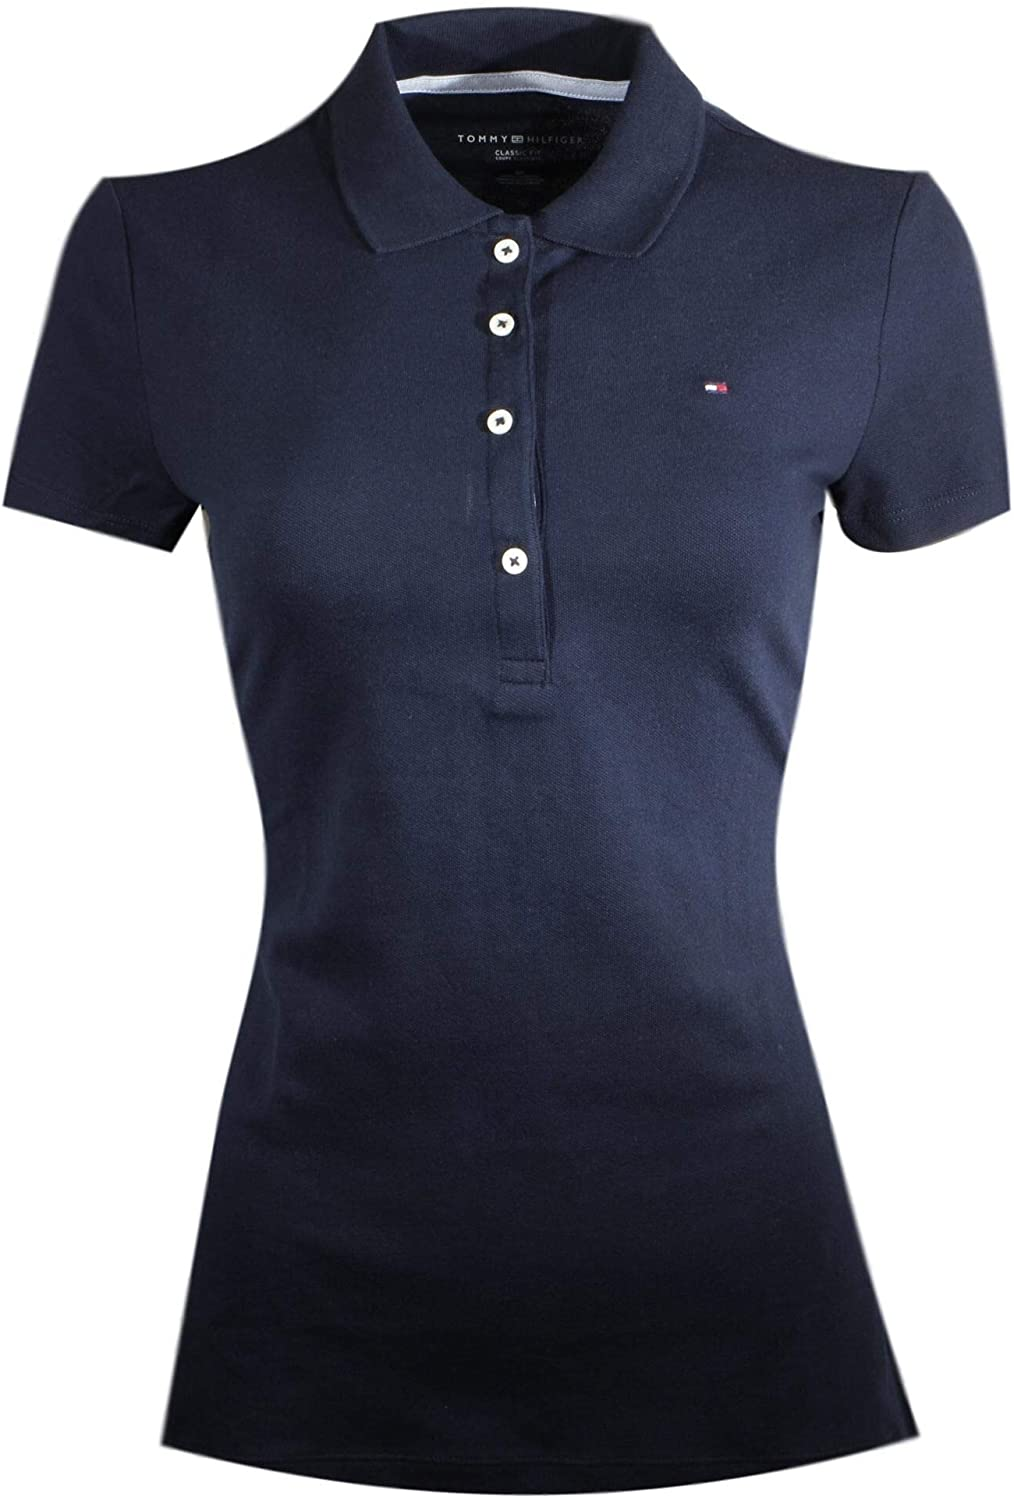 Tommy Hilfiger Women's Classic Fit Logo Polo T-Shirt